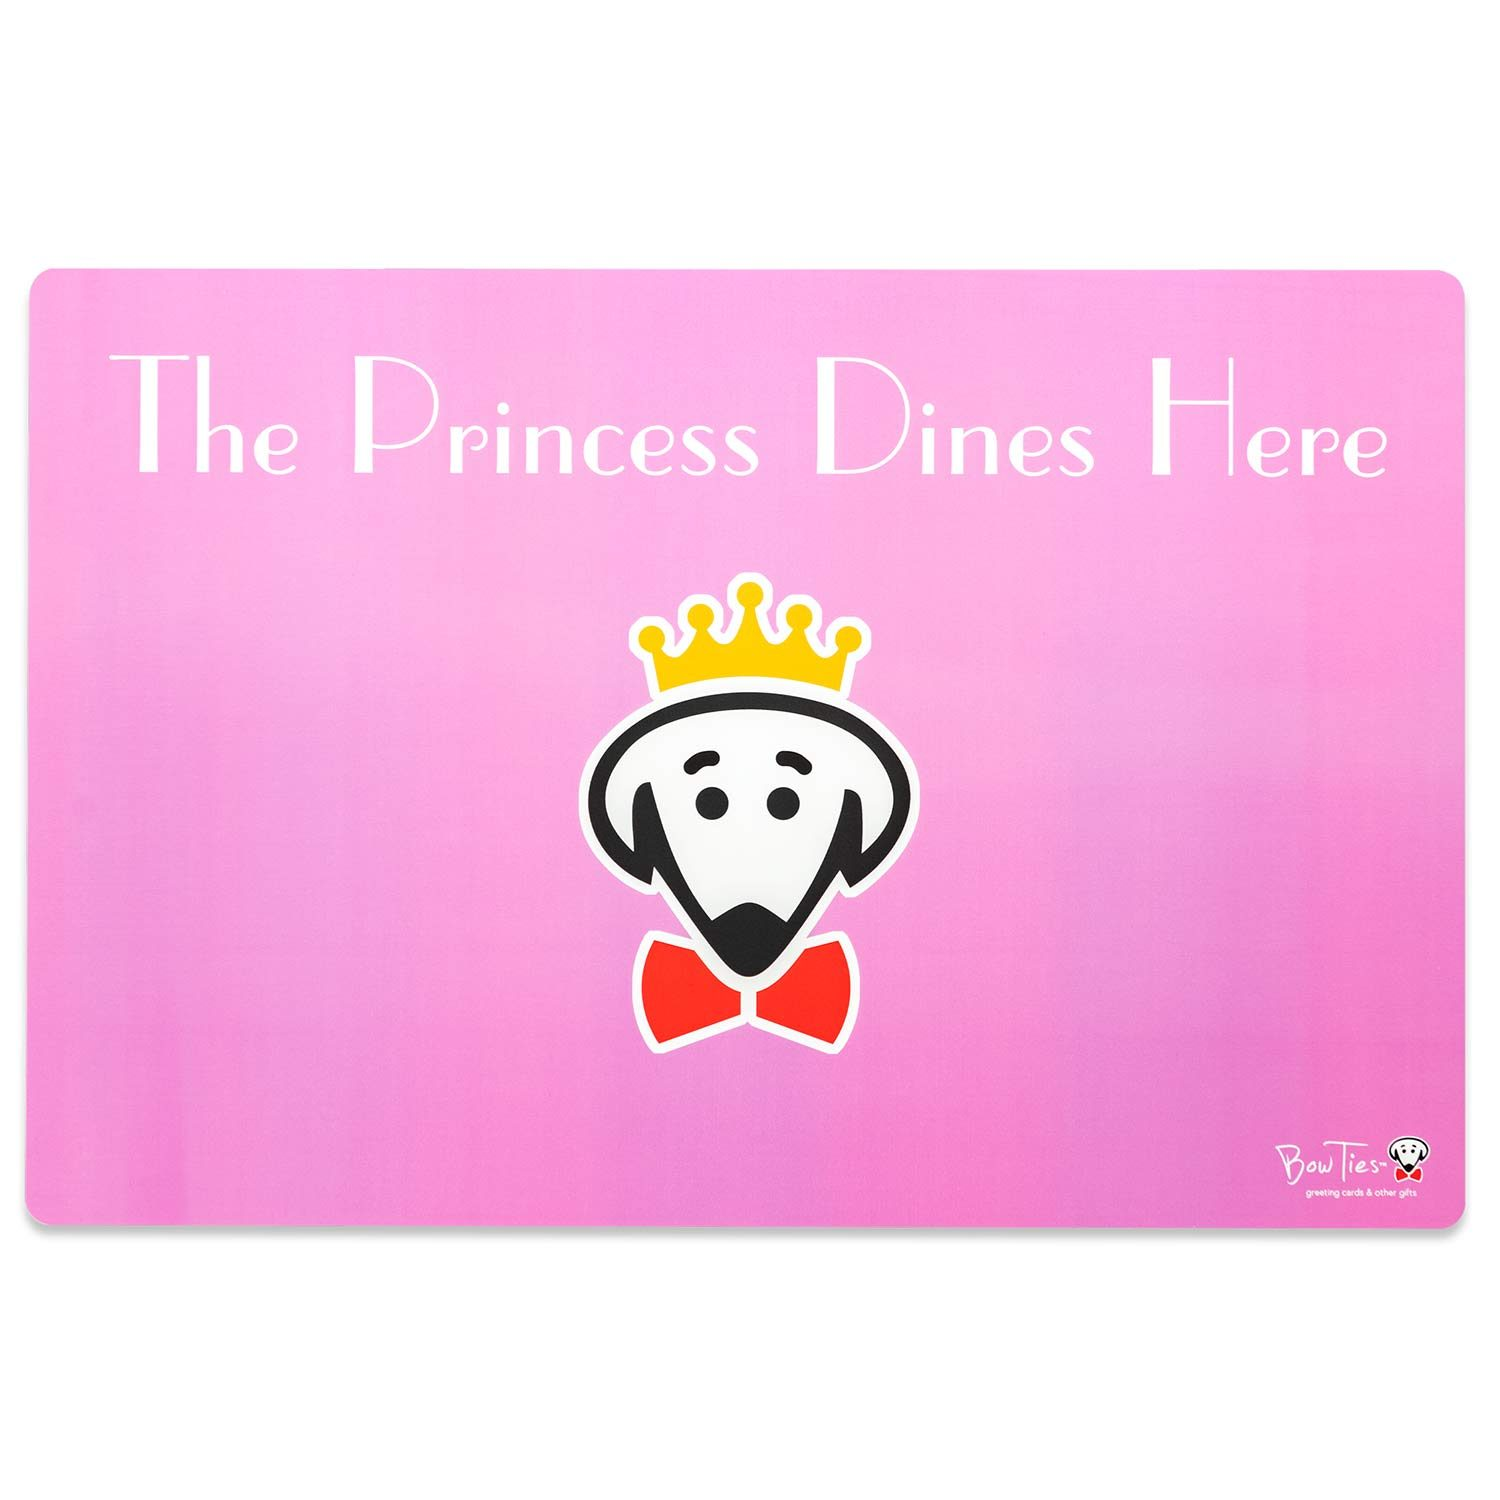 The Princess Dines Here pet mat by Beau Tyler